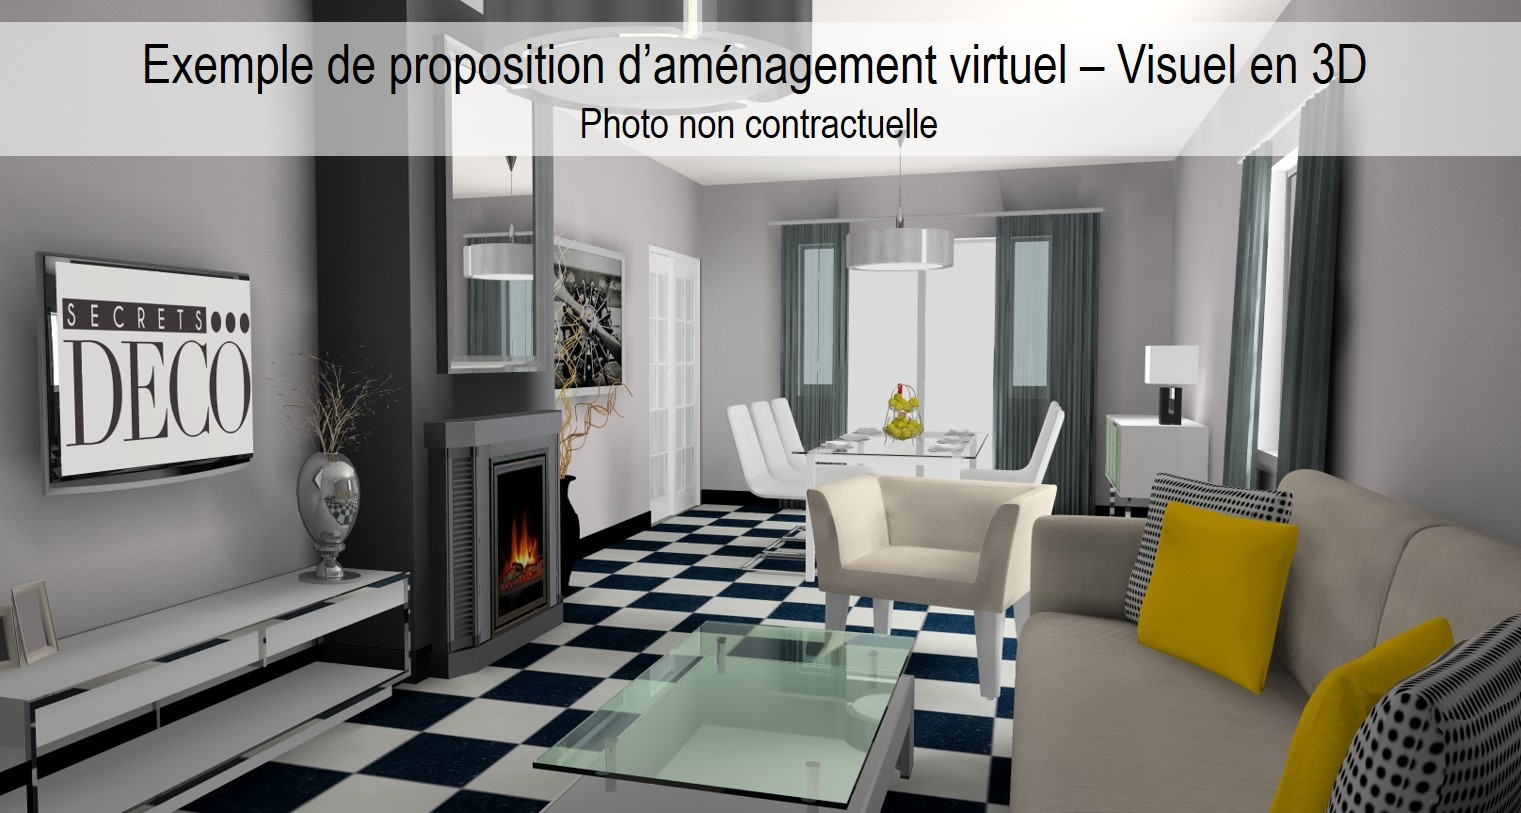 Home staging virtuel maison photo après